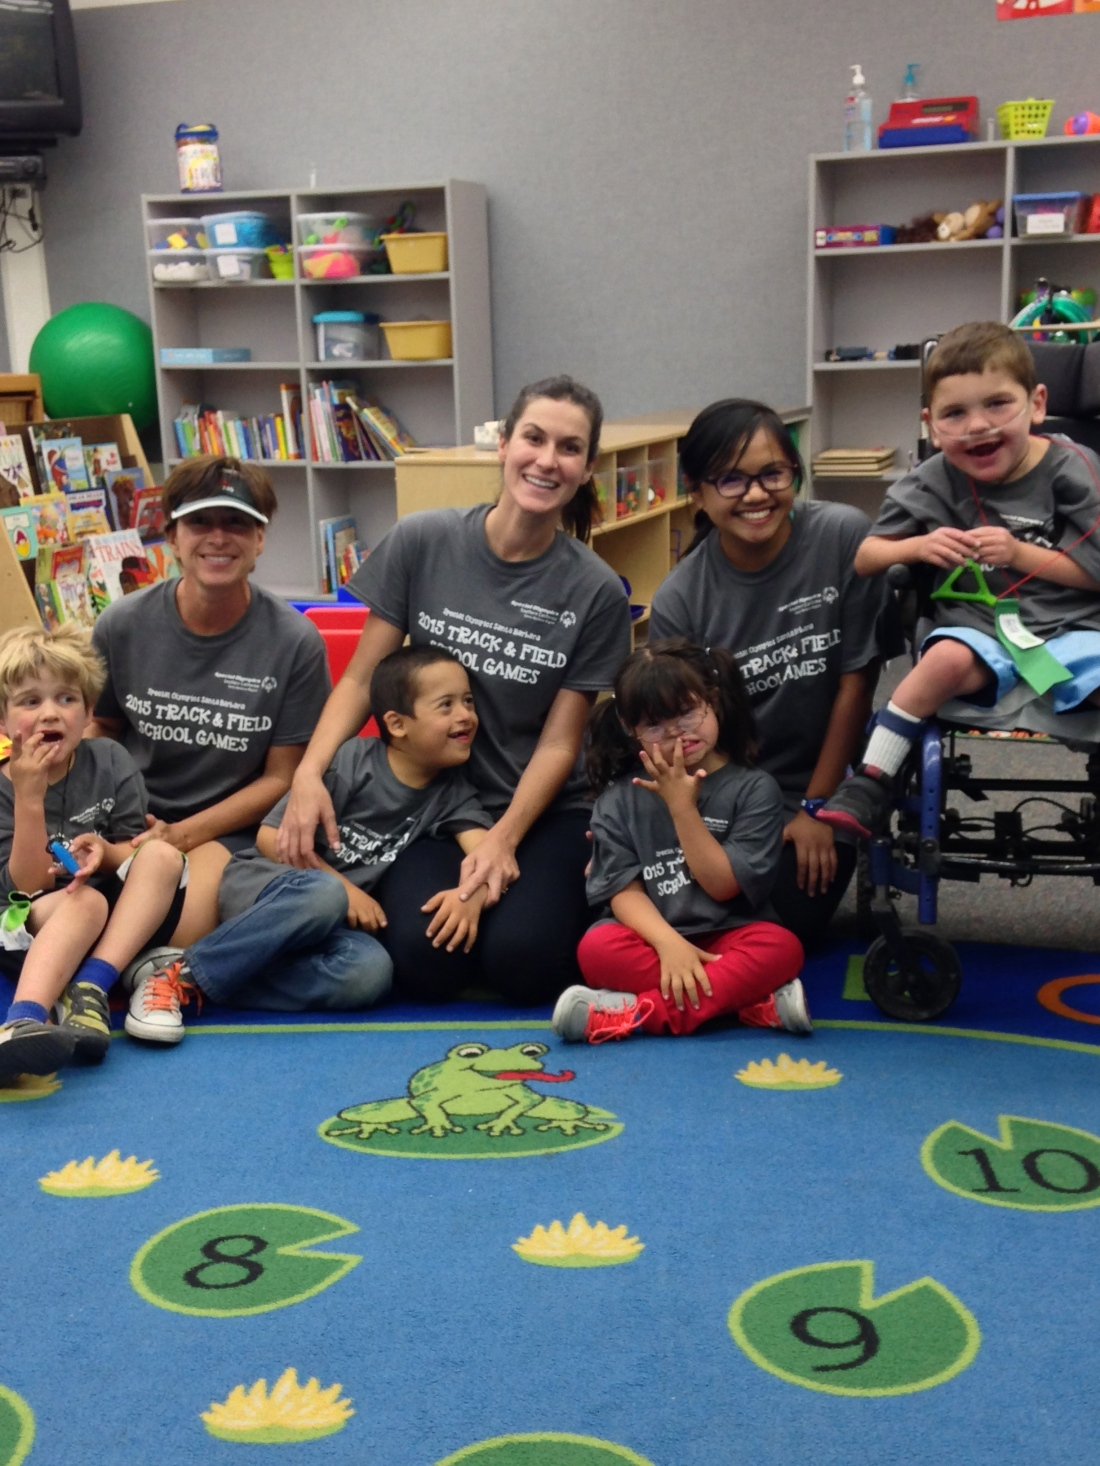 Rudy's class!  Way to go K-1 Cougars!!!